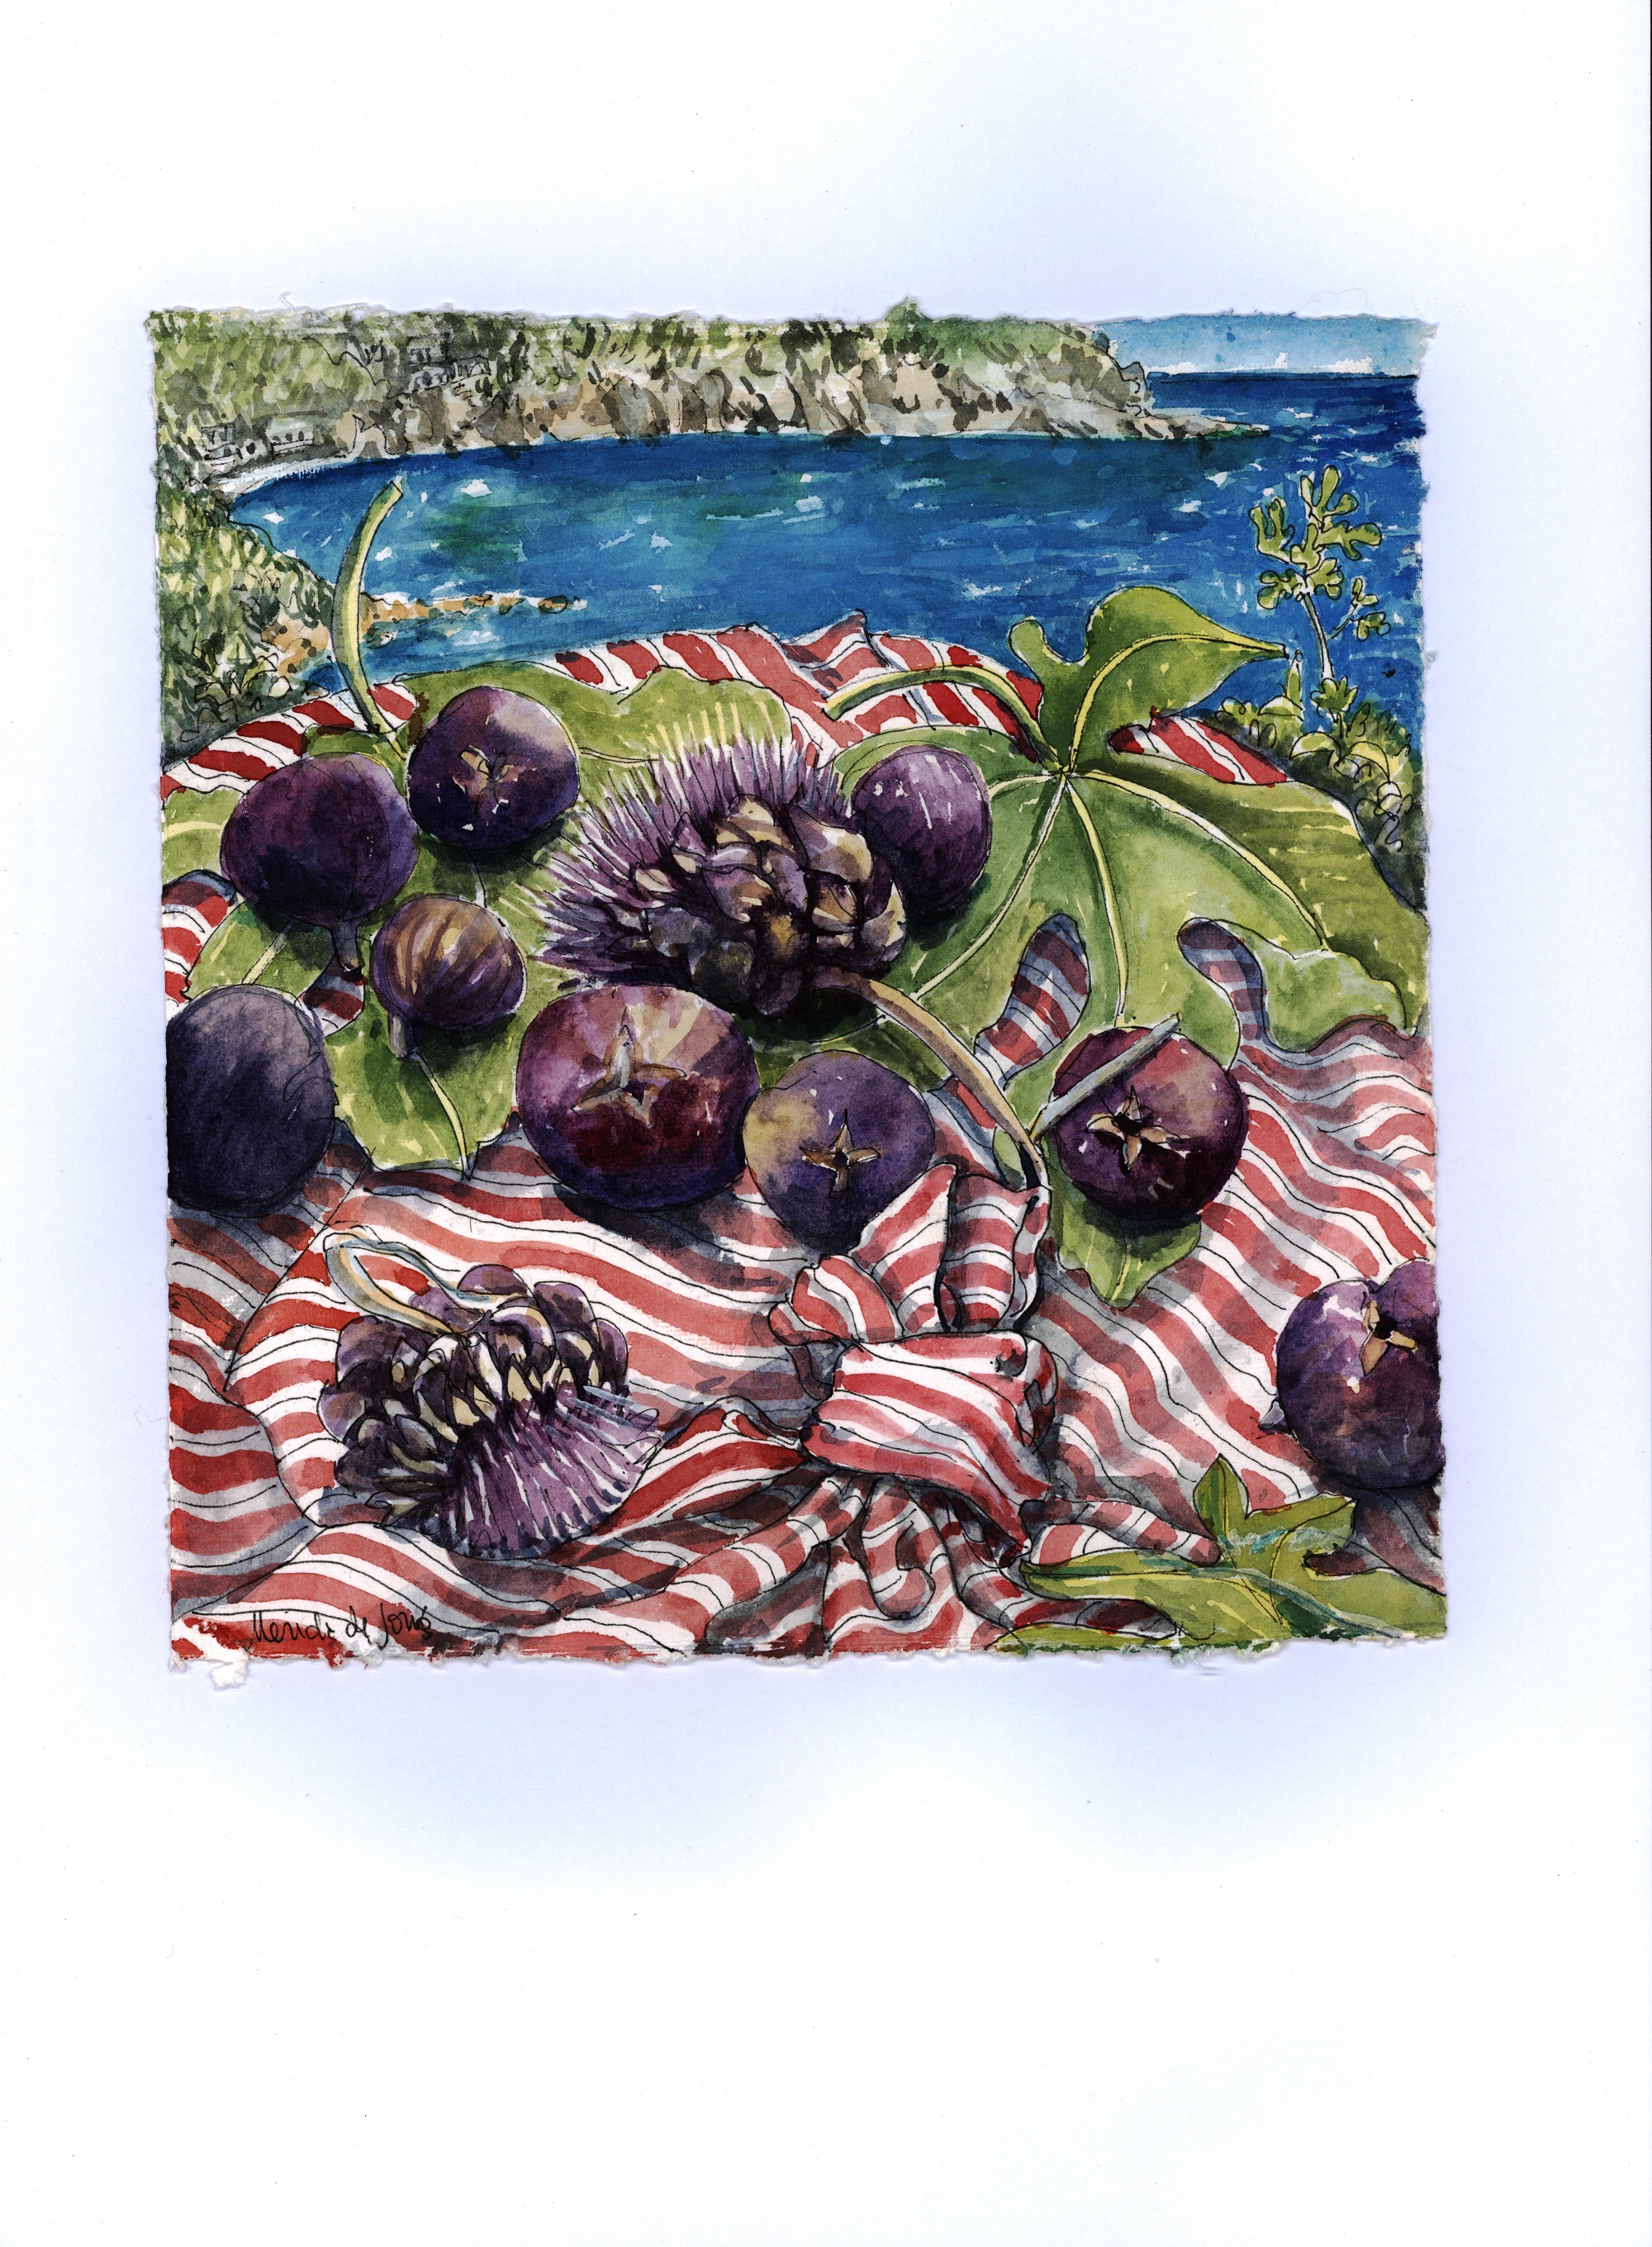 Figs and Artichokes by the Sea